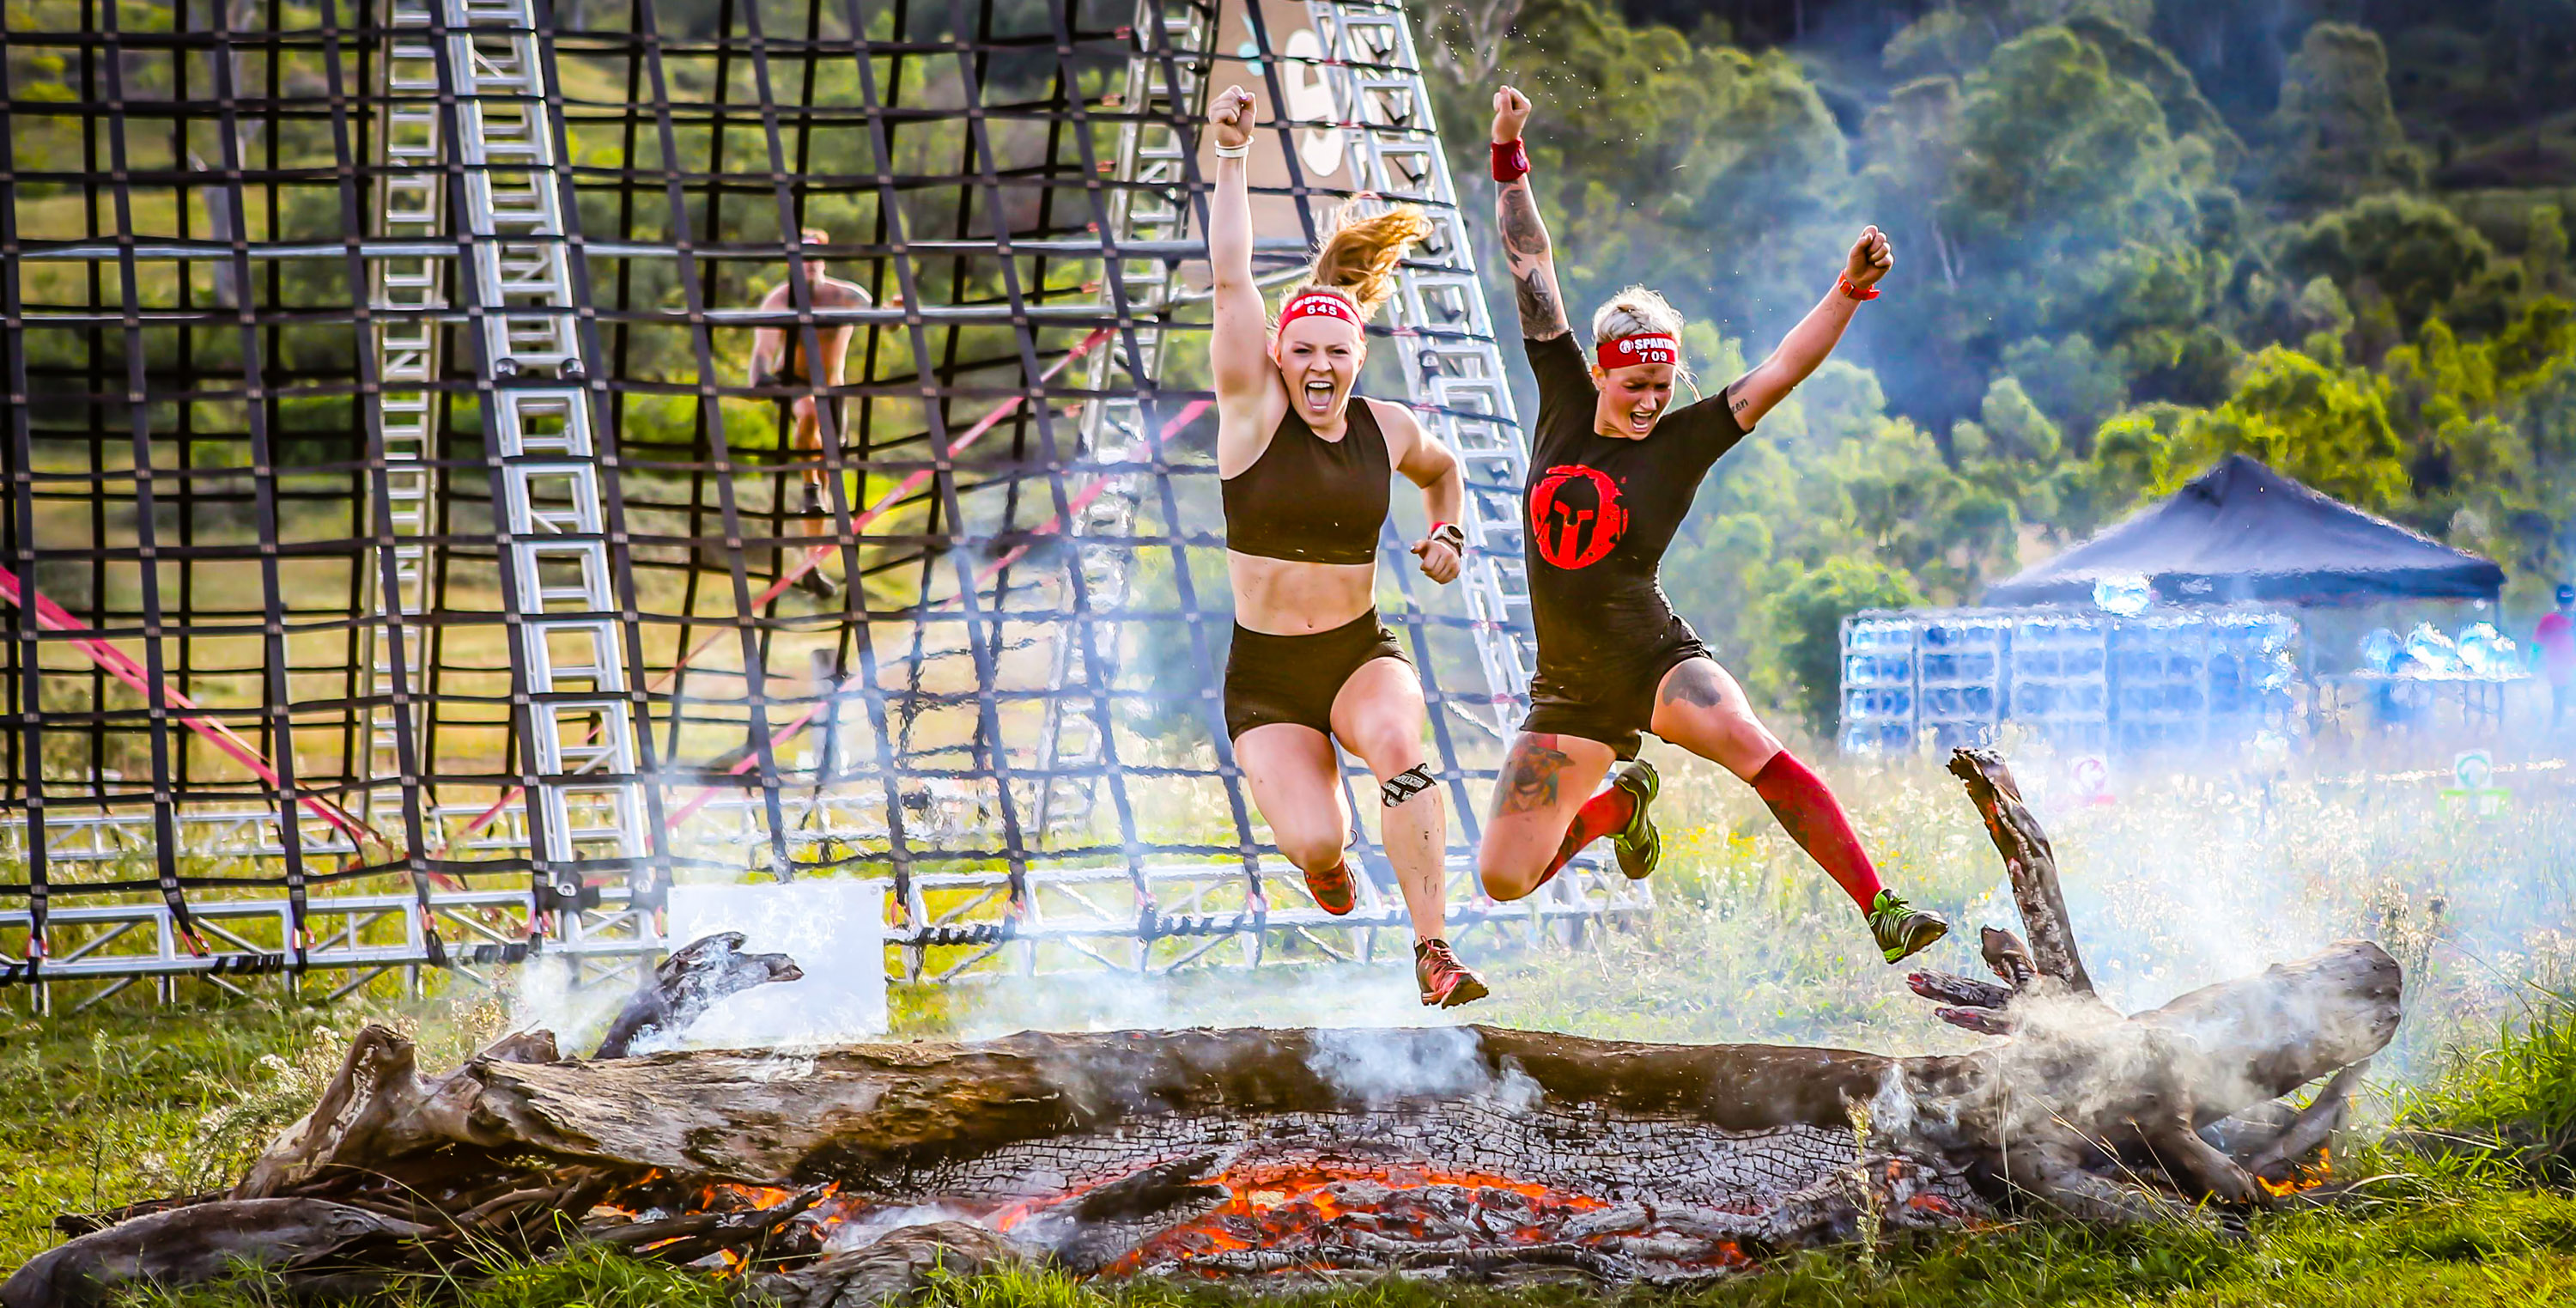 Spartan Australia Obstacle Course Races